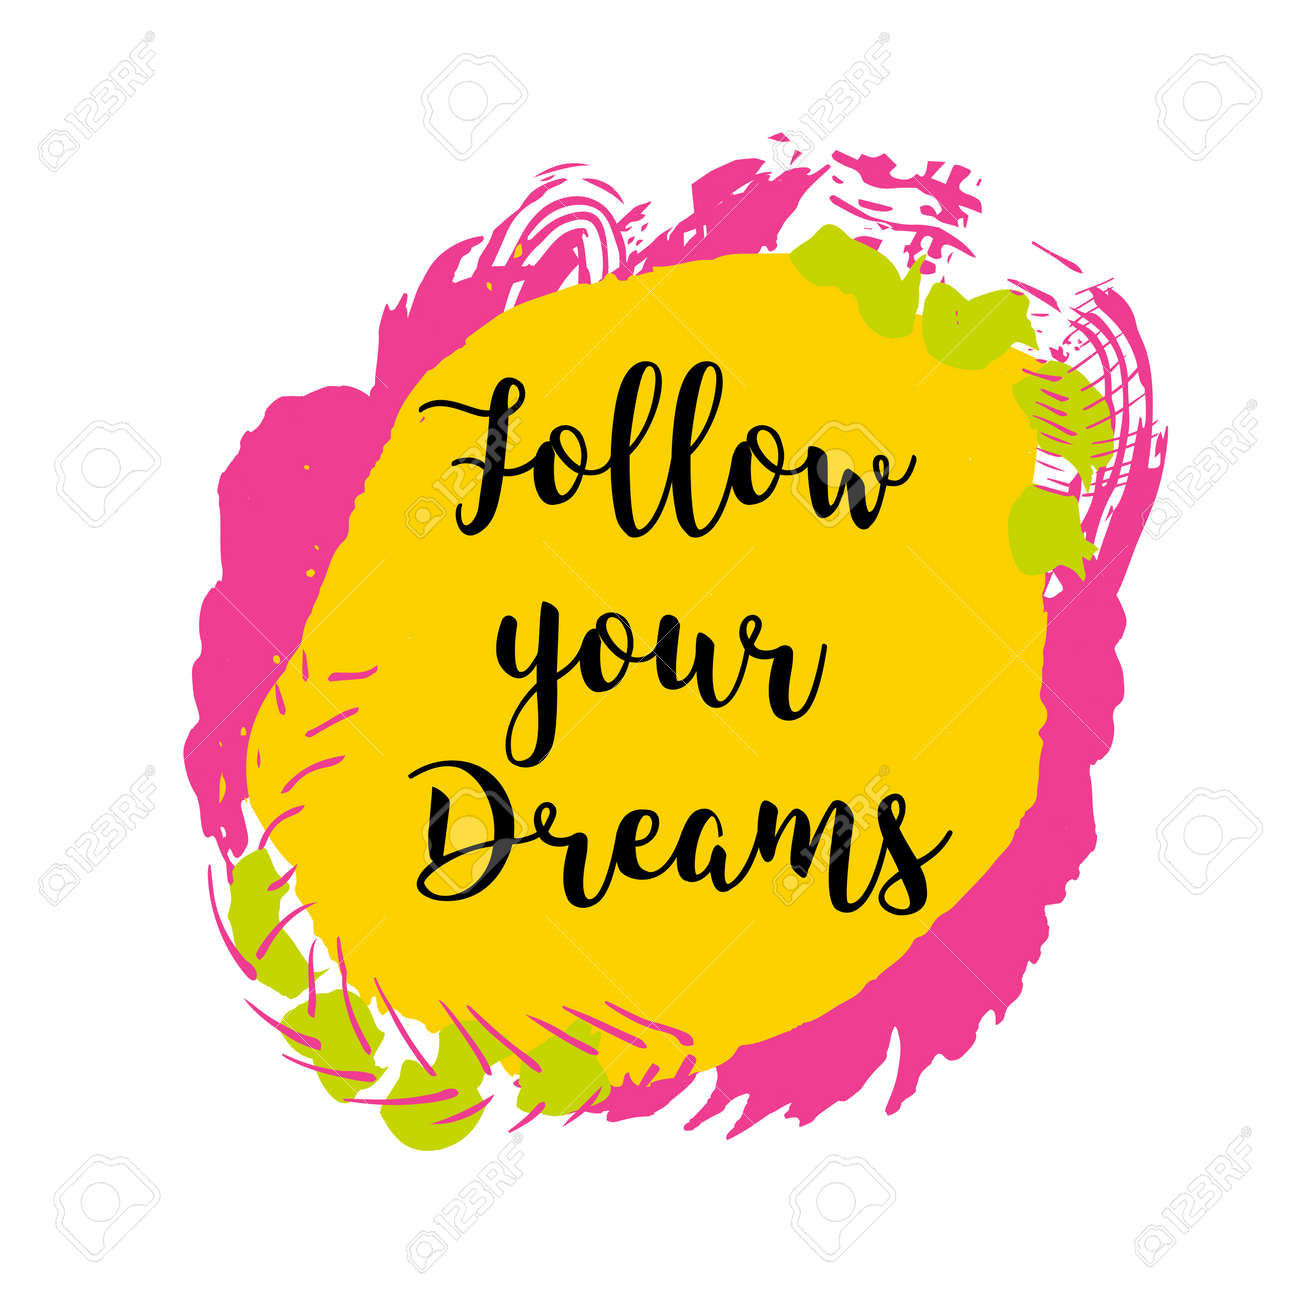 Follow Your Dreams Inspirational Quote Isolated On Colorful ...